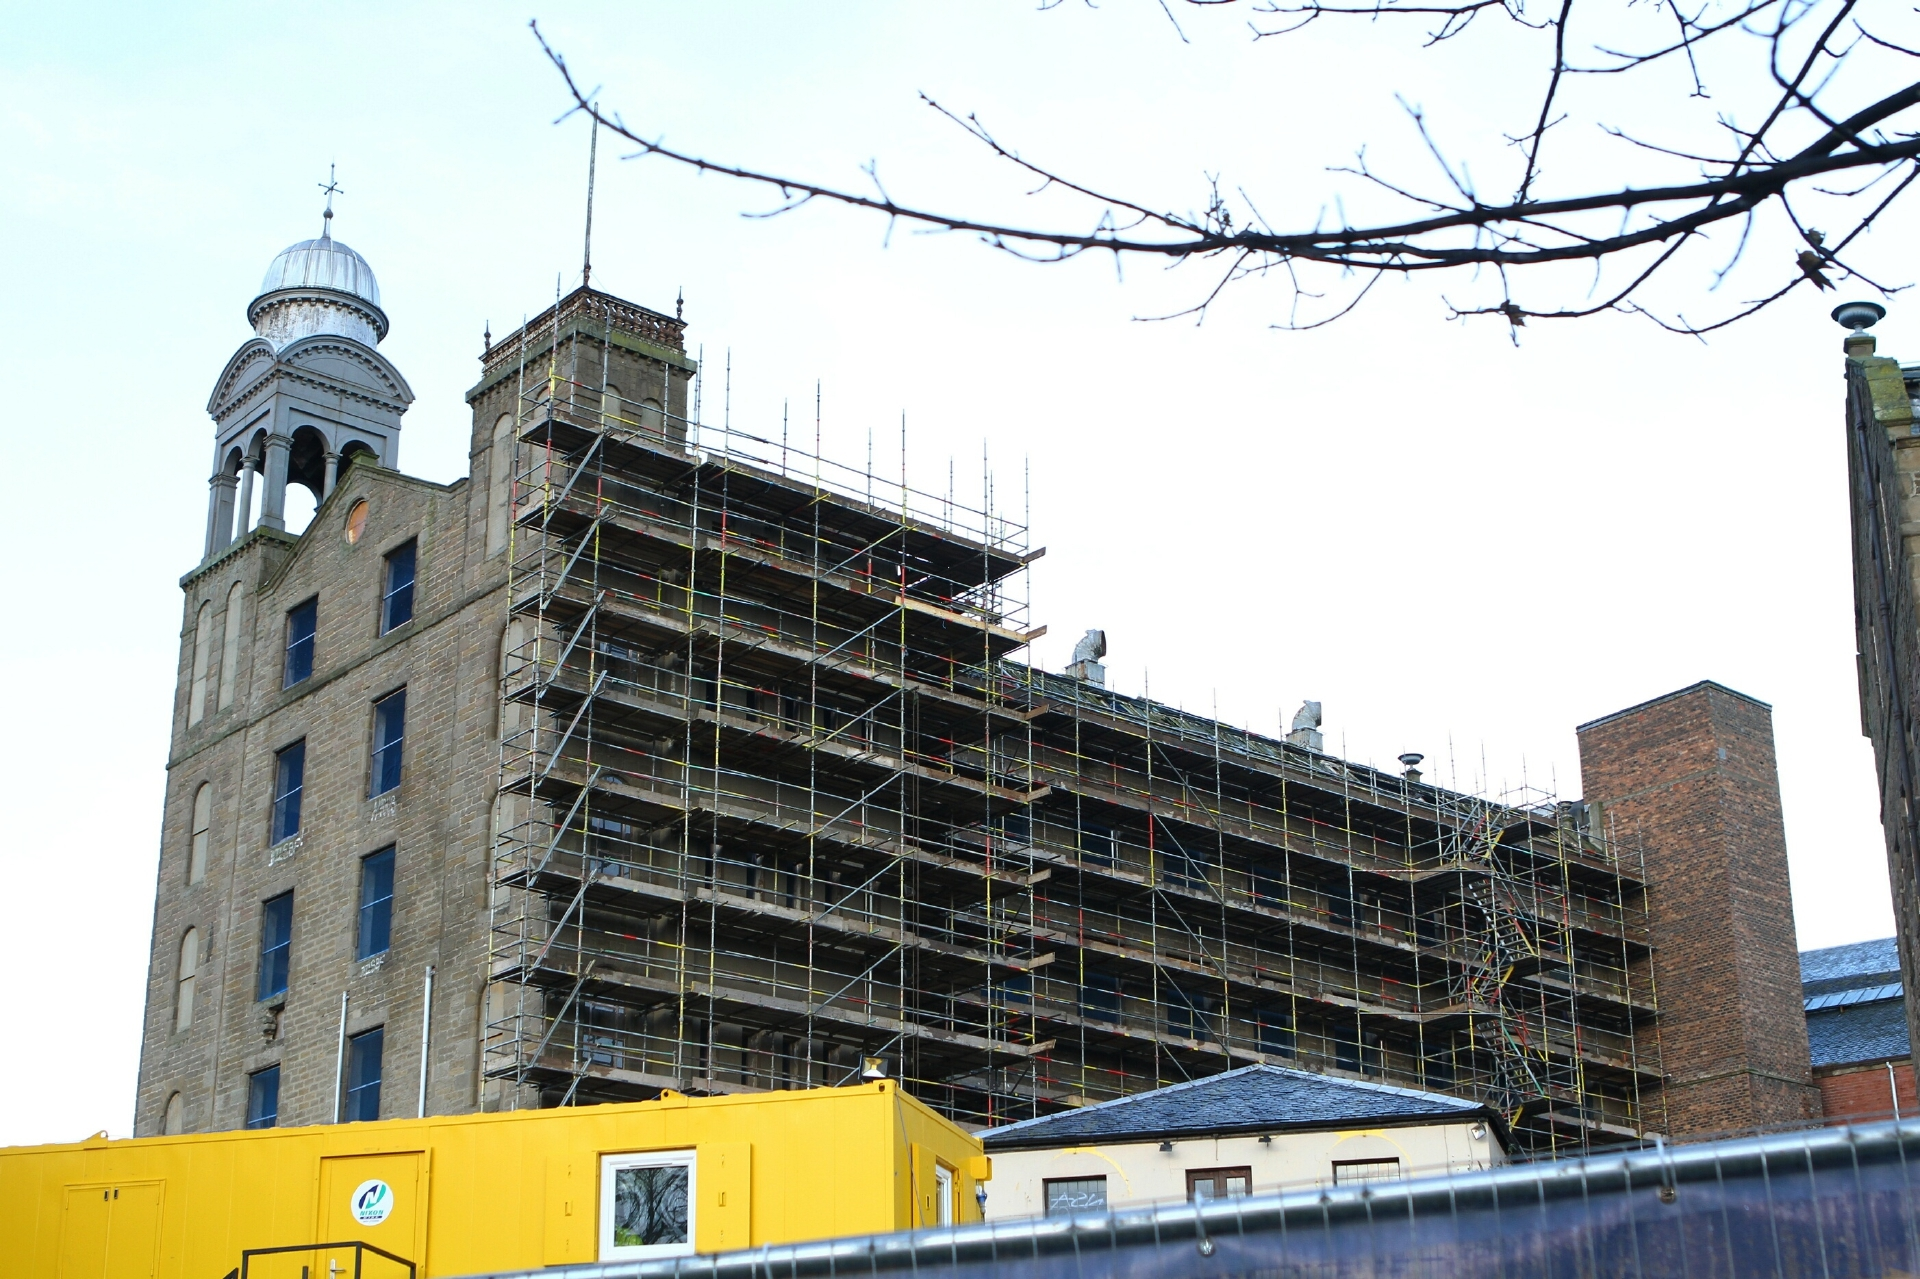 The Lower Dens Works has scaffolding erected in readiness for the start of work to convert it into an Indigo hotel.